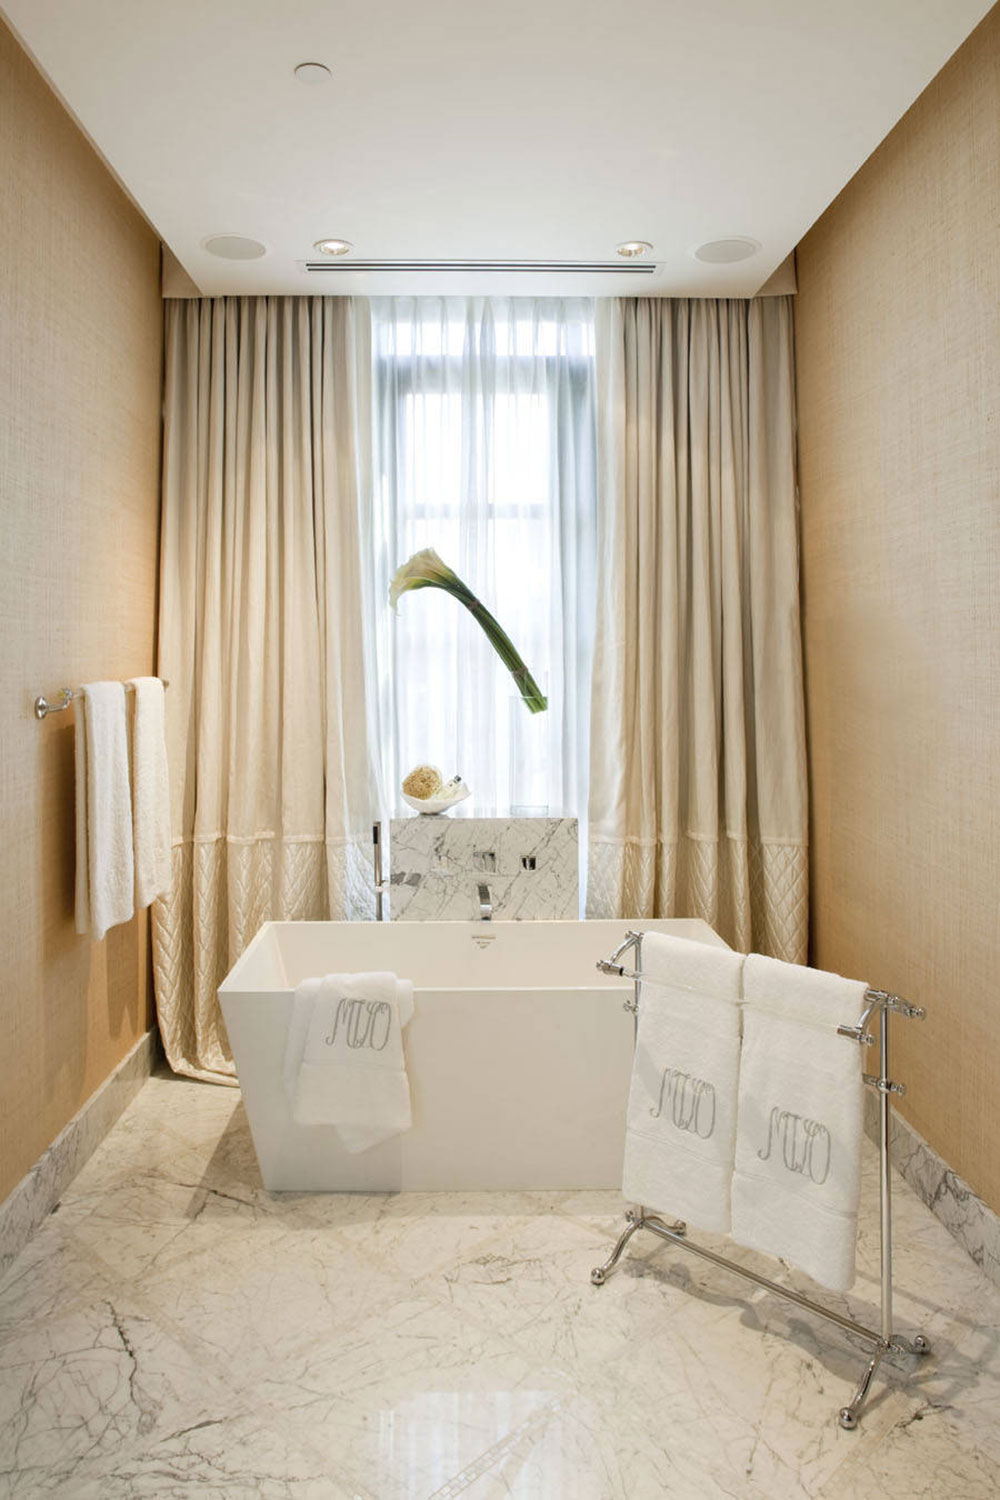 Jamie-Herzlinger-by-Jamie-Herzlinger Where to hang wet towels in a small bathroom